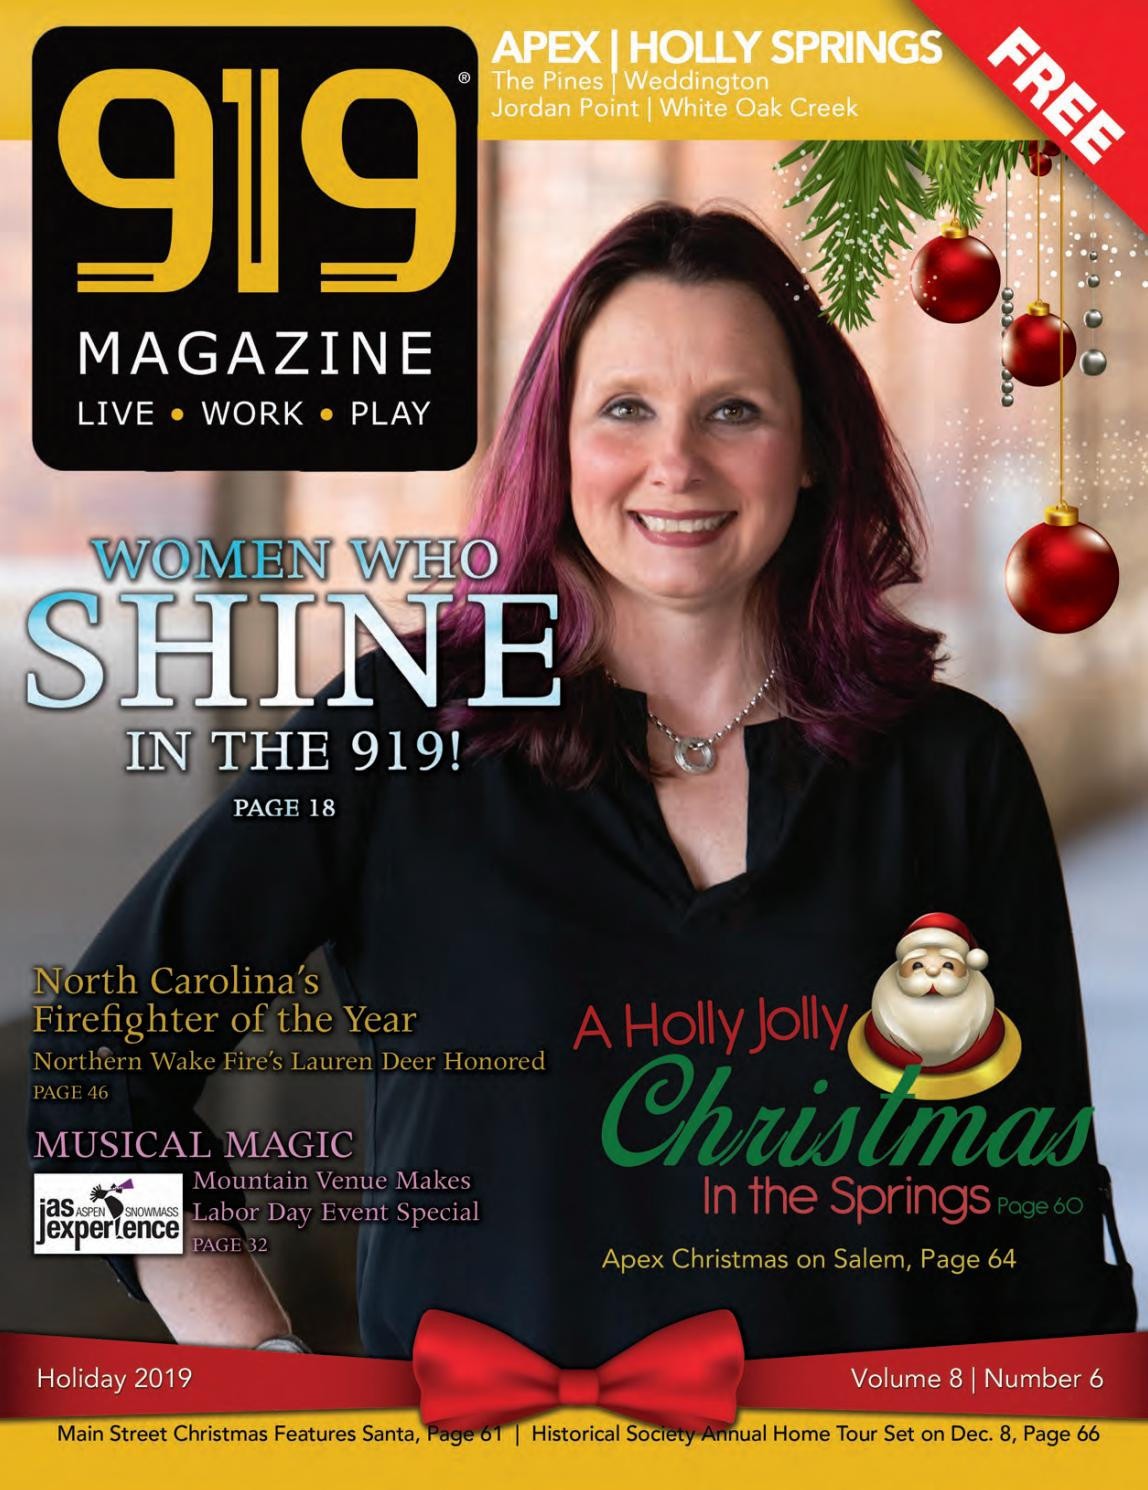 Hope For Christmas December 8, 2020 Holly Springs Baptist Volunteers, December 8 919 Magazine Holiday 2019  Holly Springs, Apex by 919 Magazine   issuu